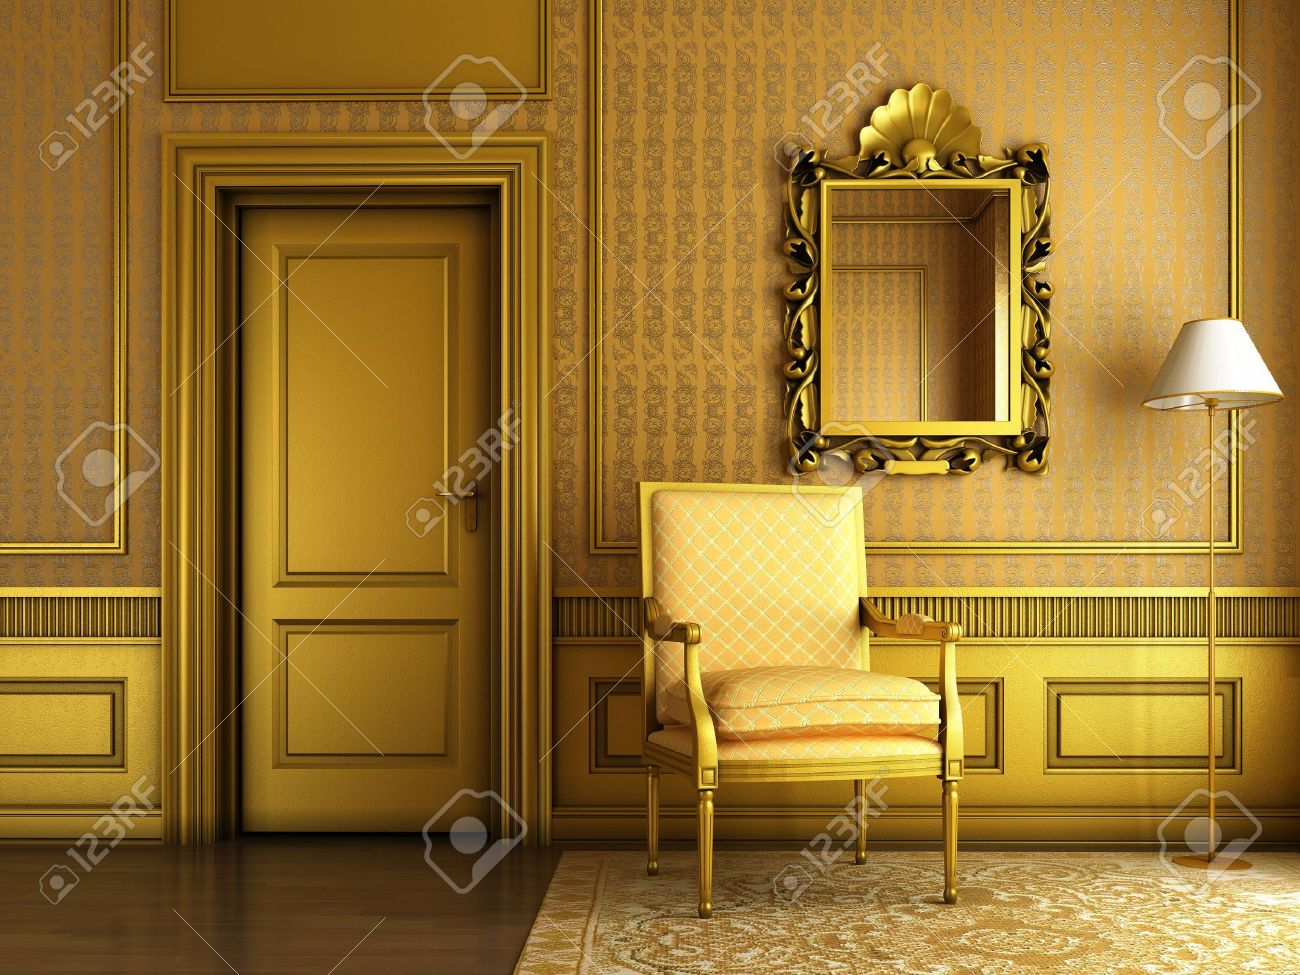 Superieur Interior Scene Of Luxury Living Room With Lots Of Golden Molding And  Furniture Stock Photo